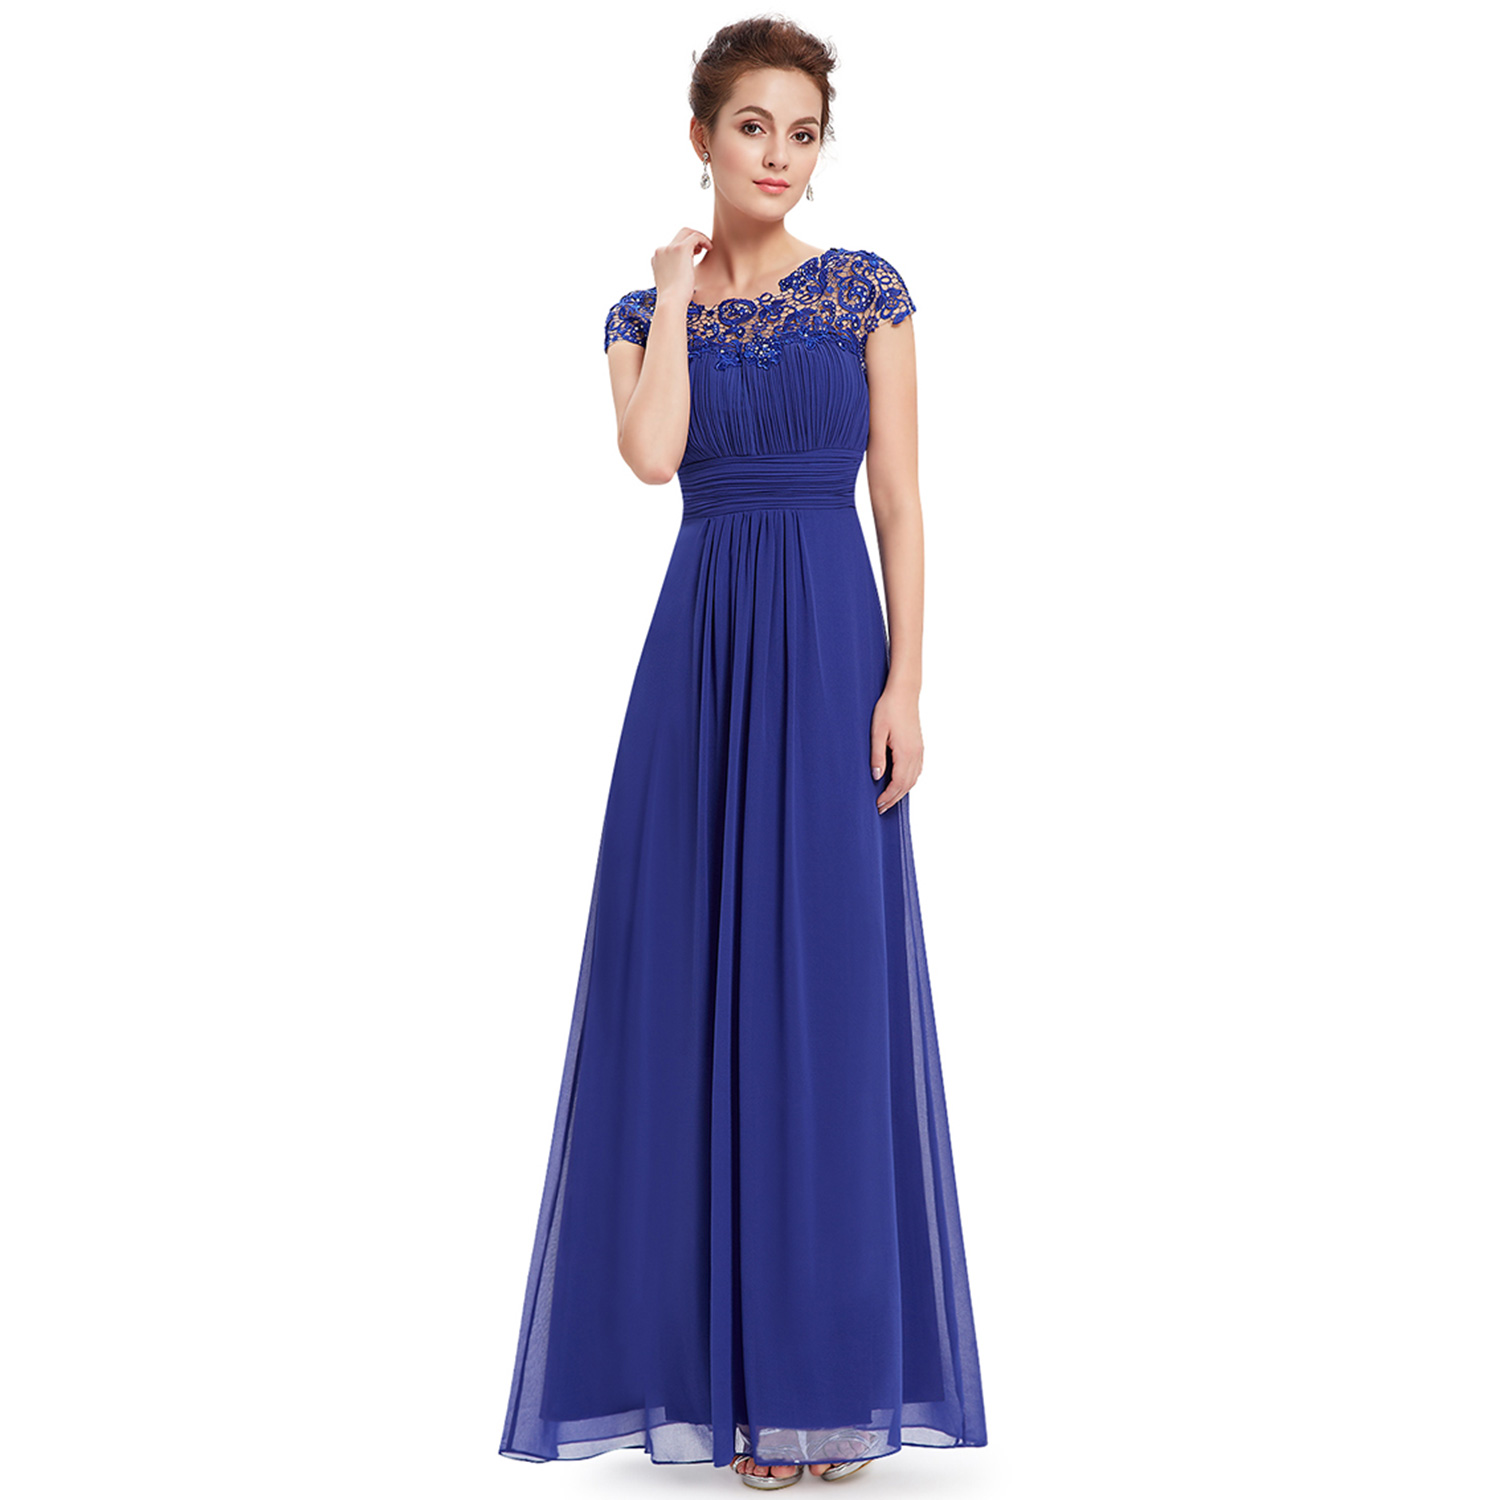 Ever pretty long formal evening prom party dress bridesmaid picture 13 of 19 ombrellifo Choice Image